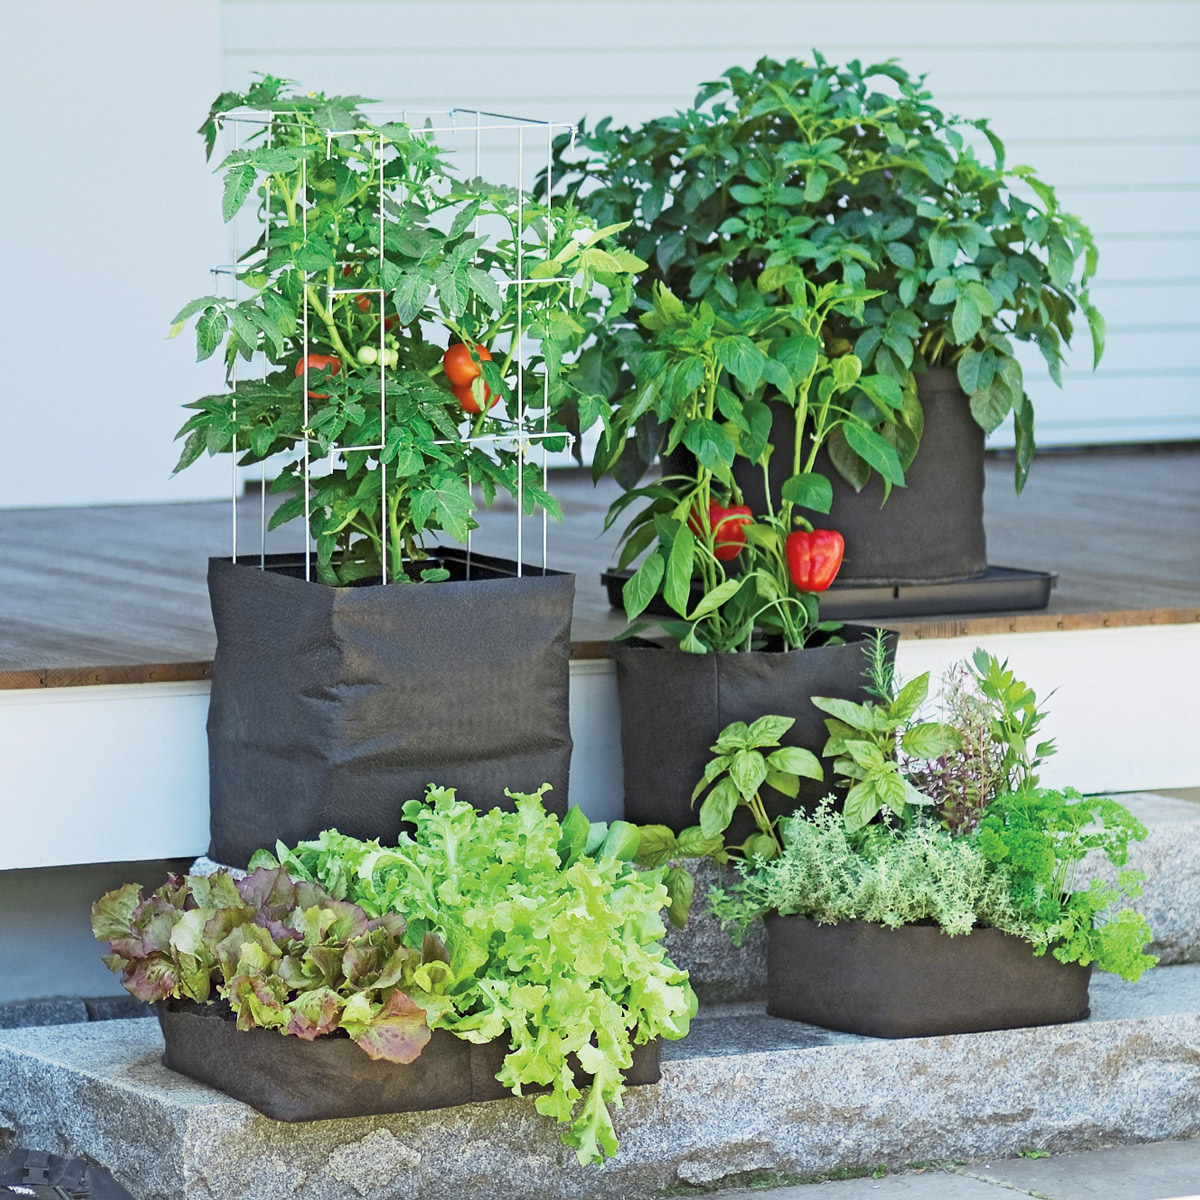 grow bags tomatoes peppers herbs and potatoes. Black Bedroom Furniture Sets. Home Design Ideas